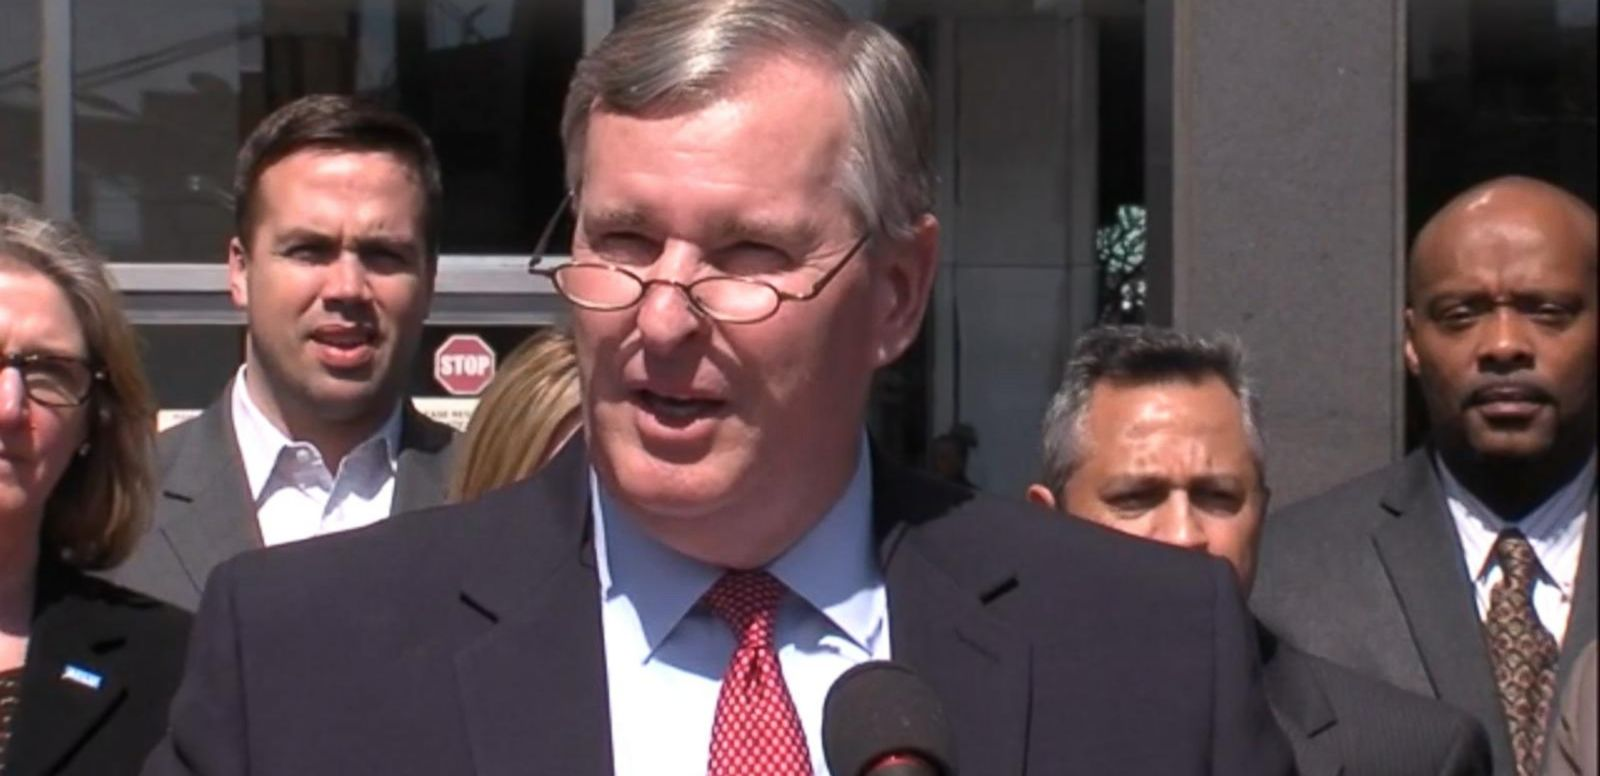 VIDEO: Indianapolis Mayor on Religious Freedom Bill: 'Indy Welcomes All'